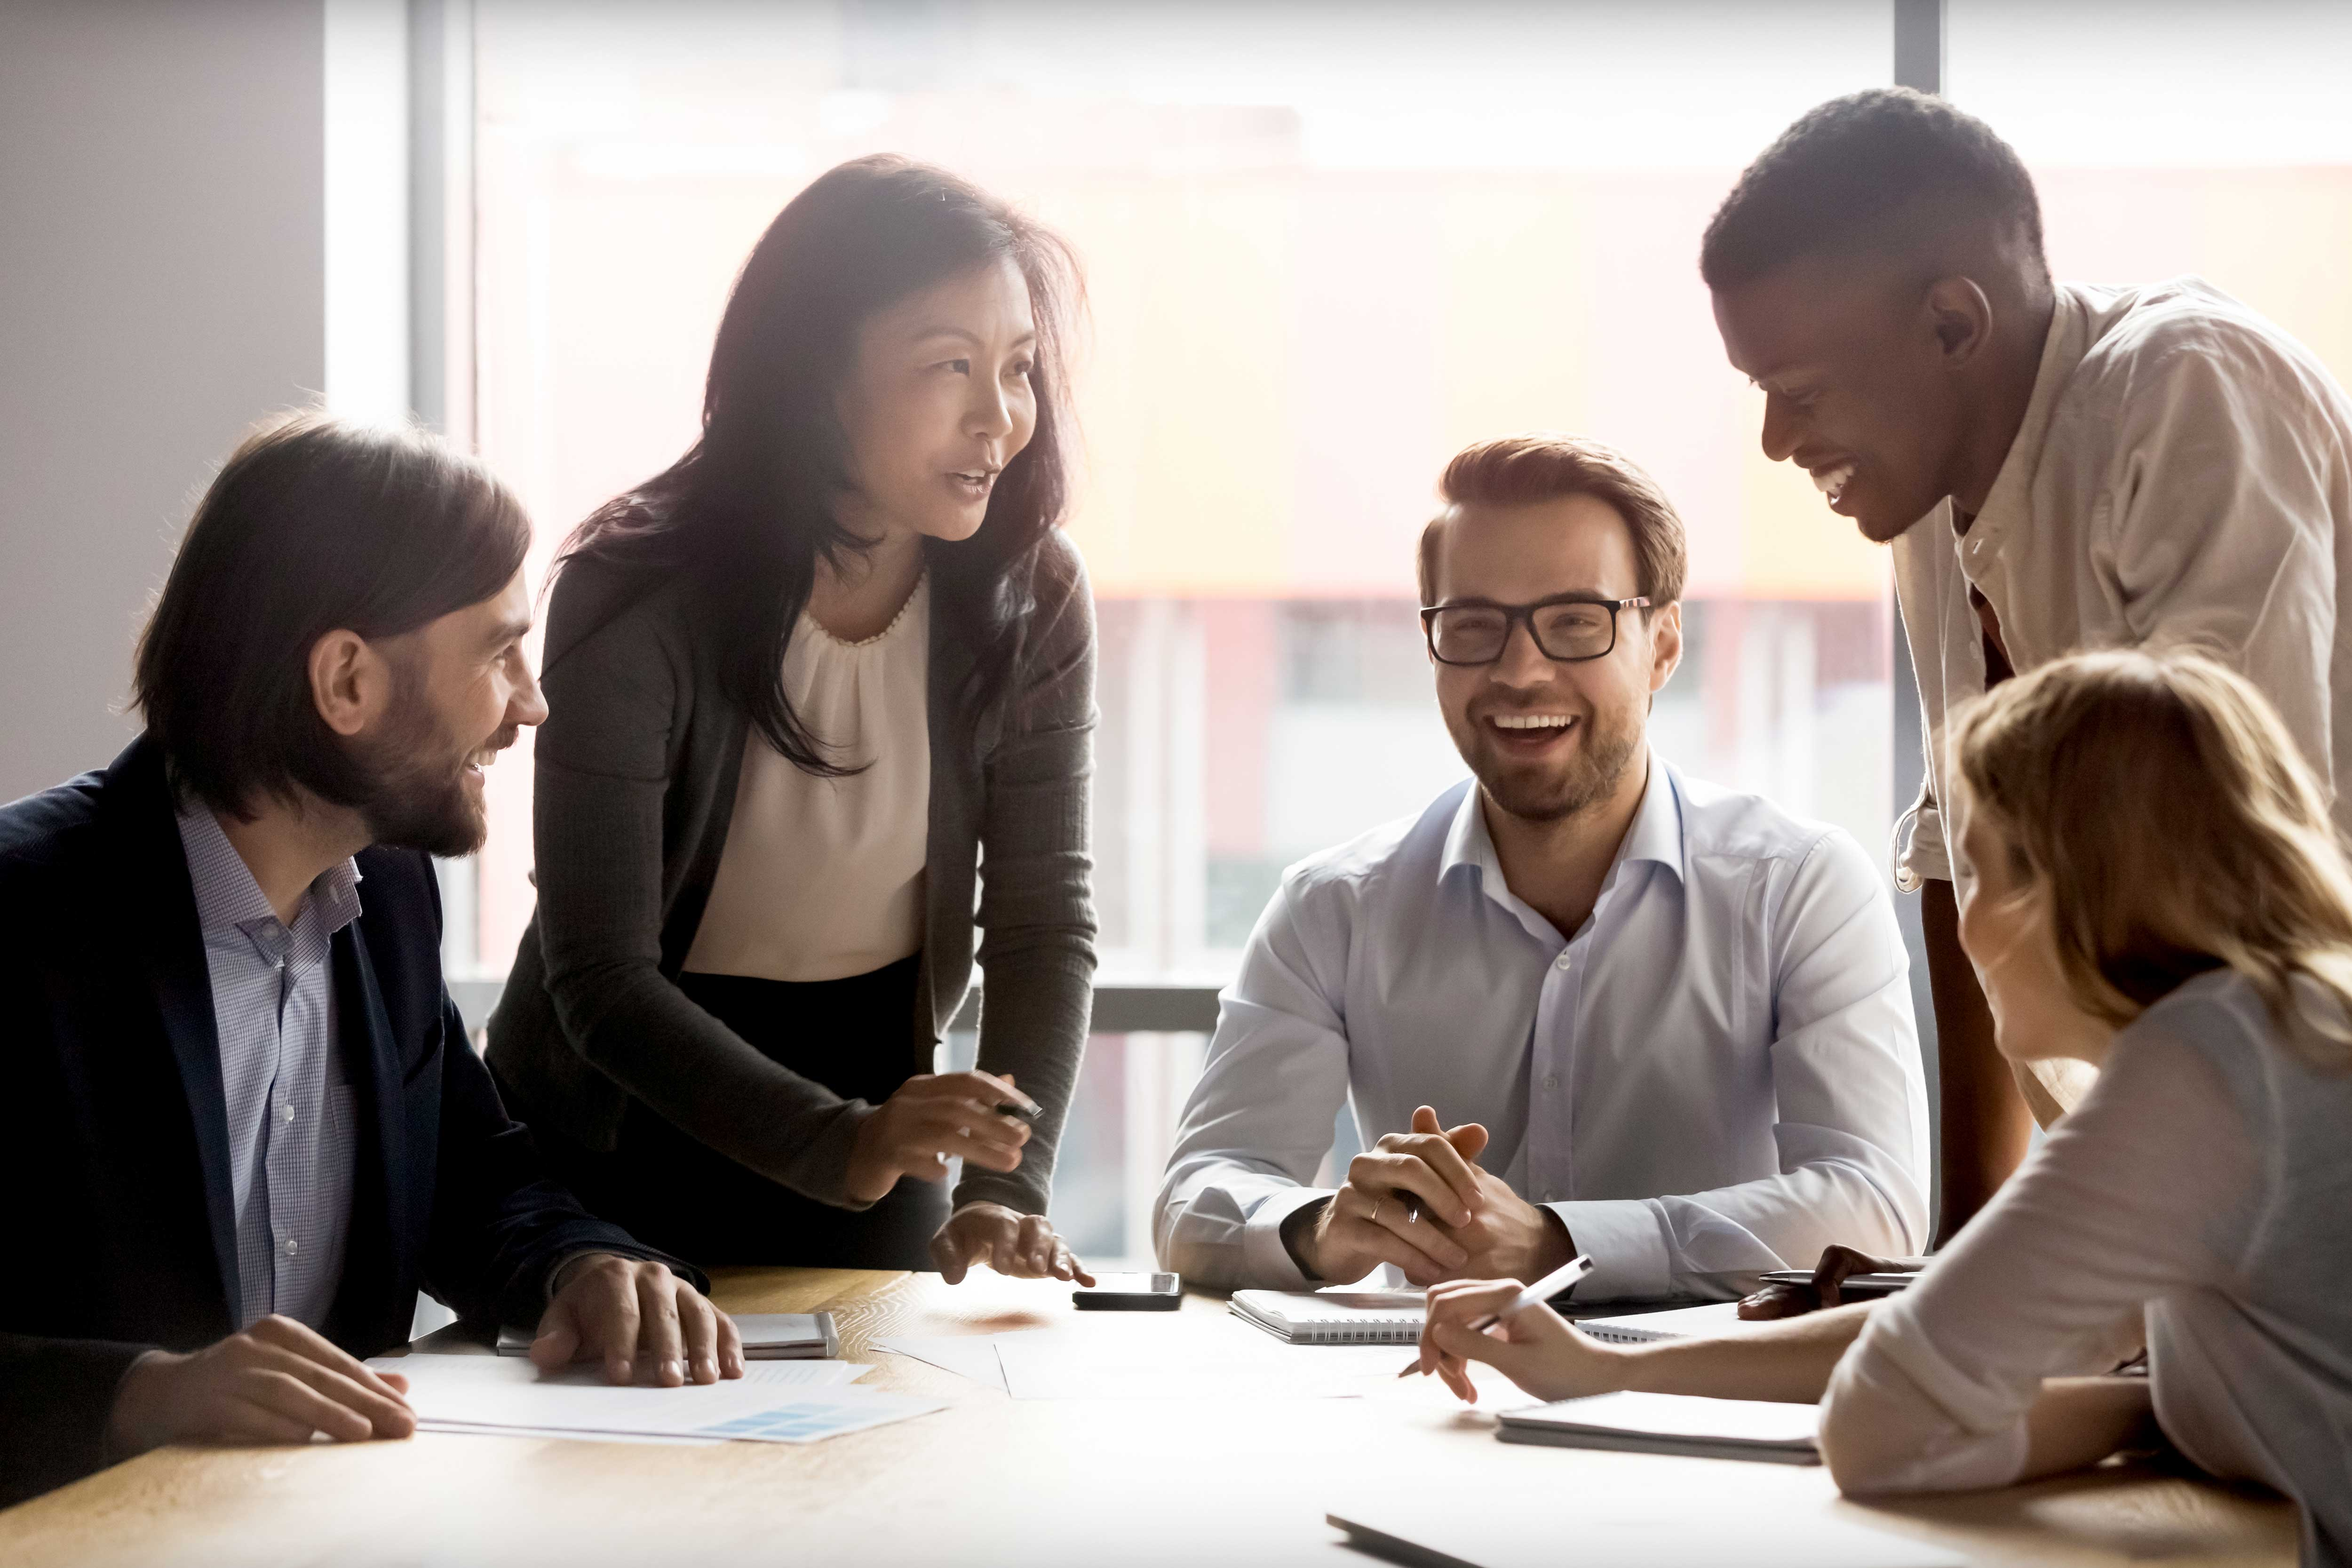 Diverse business people working together at an office